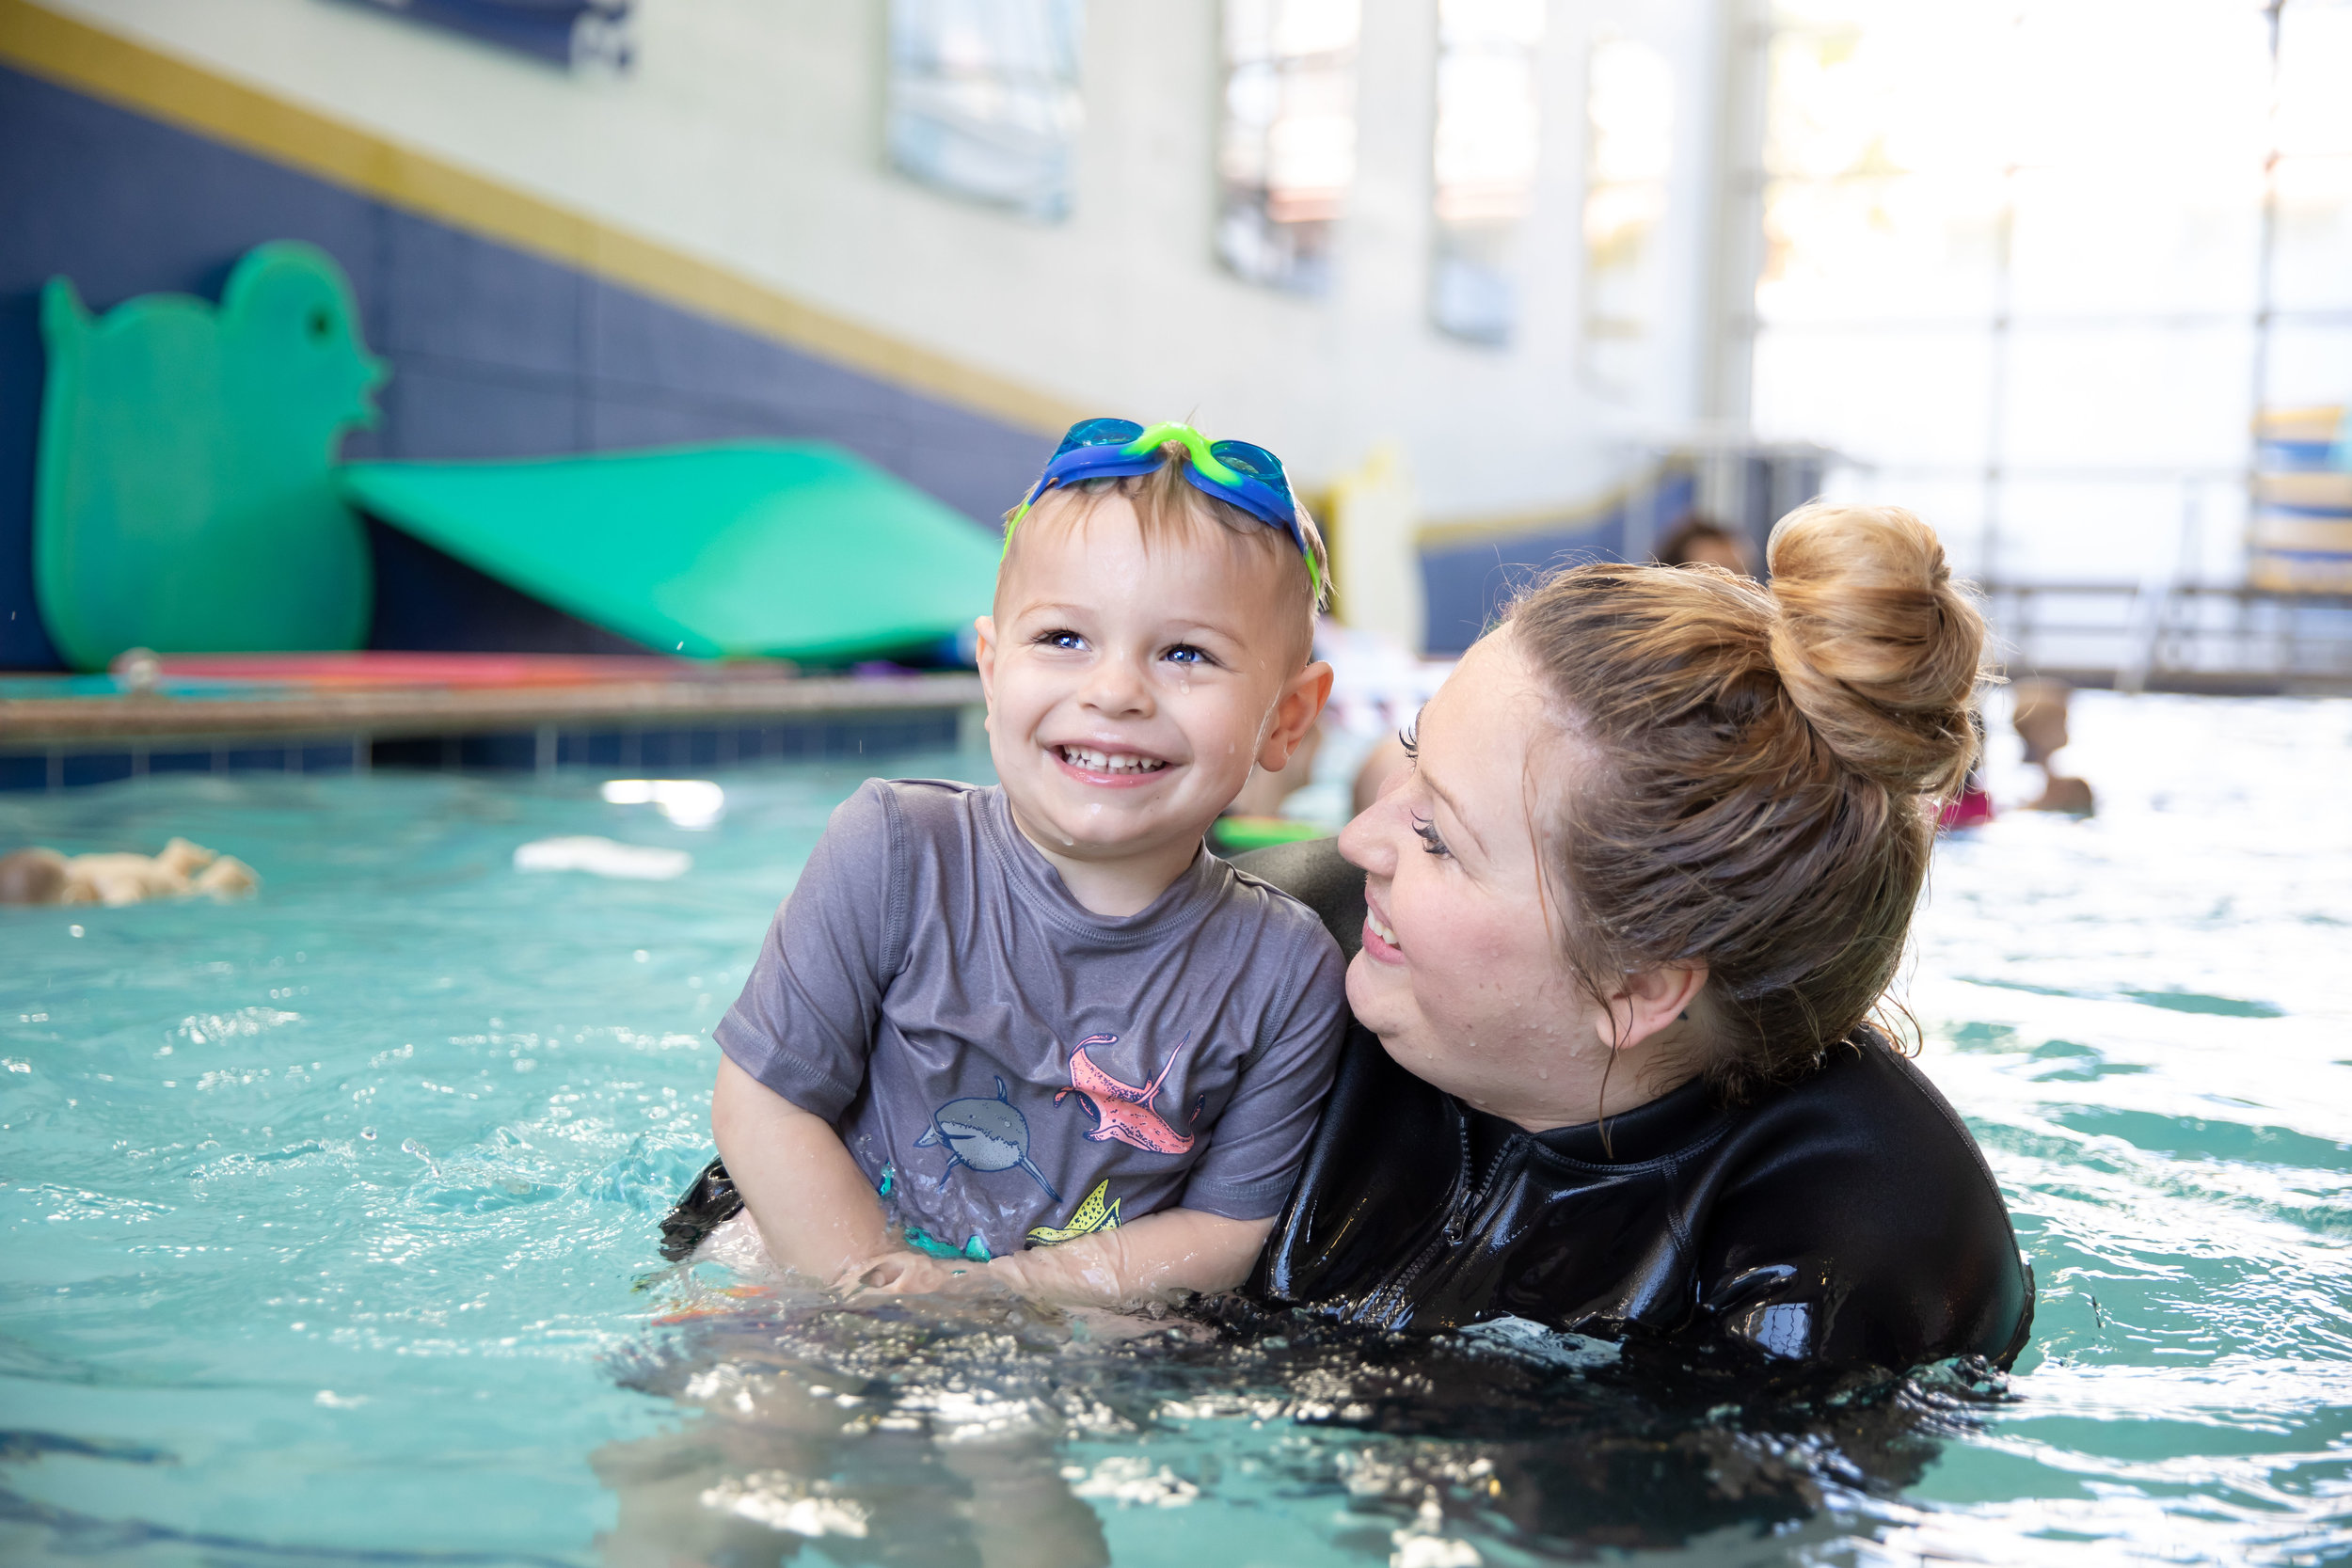 Aiden adores his instructor    Christie   . She knows just how to encourage and push him to get the best results.